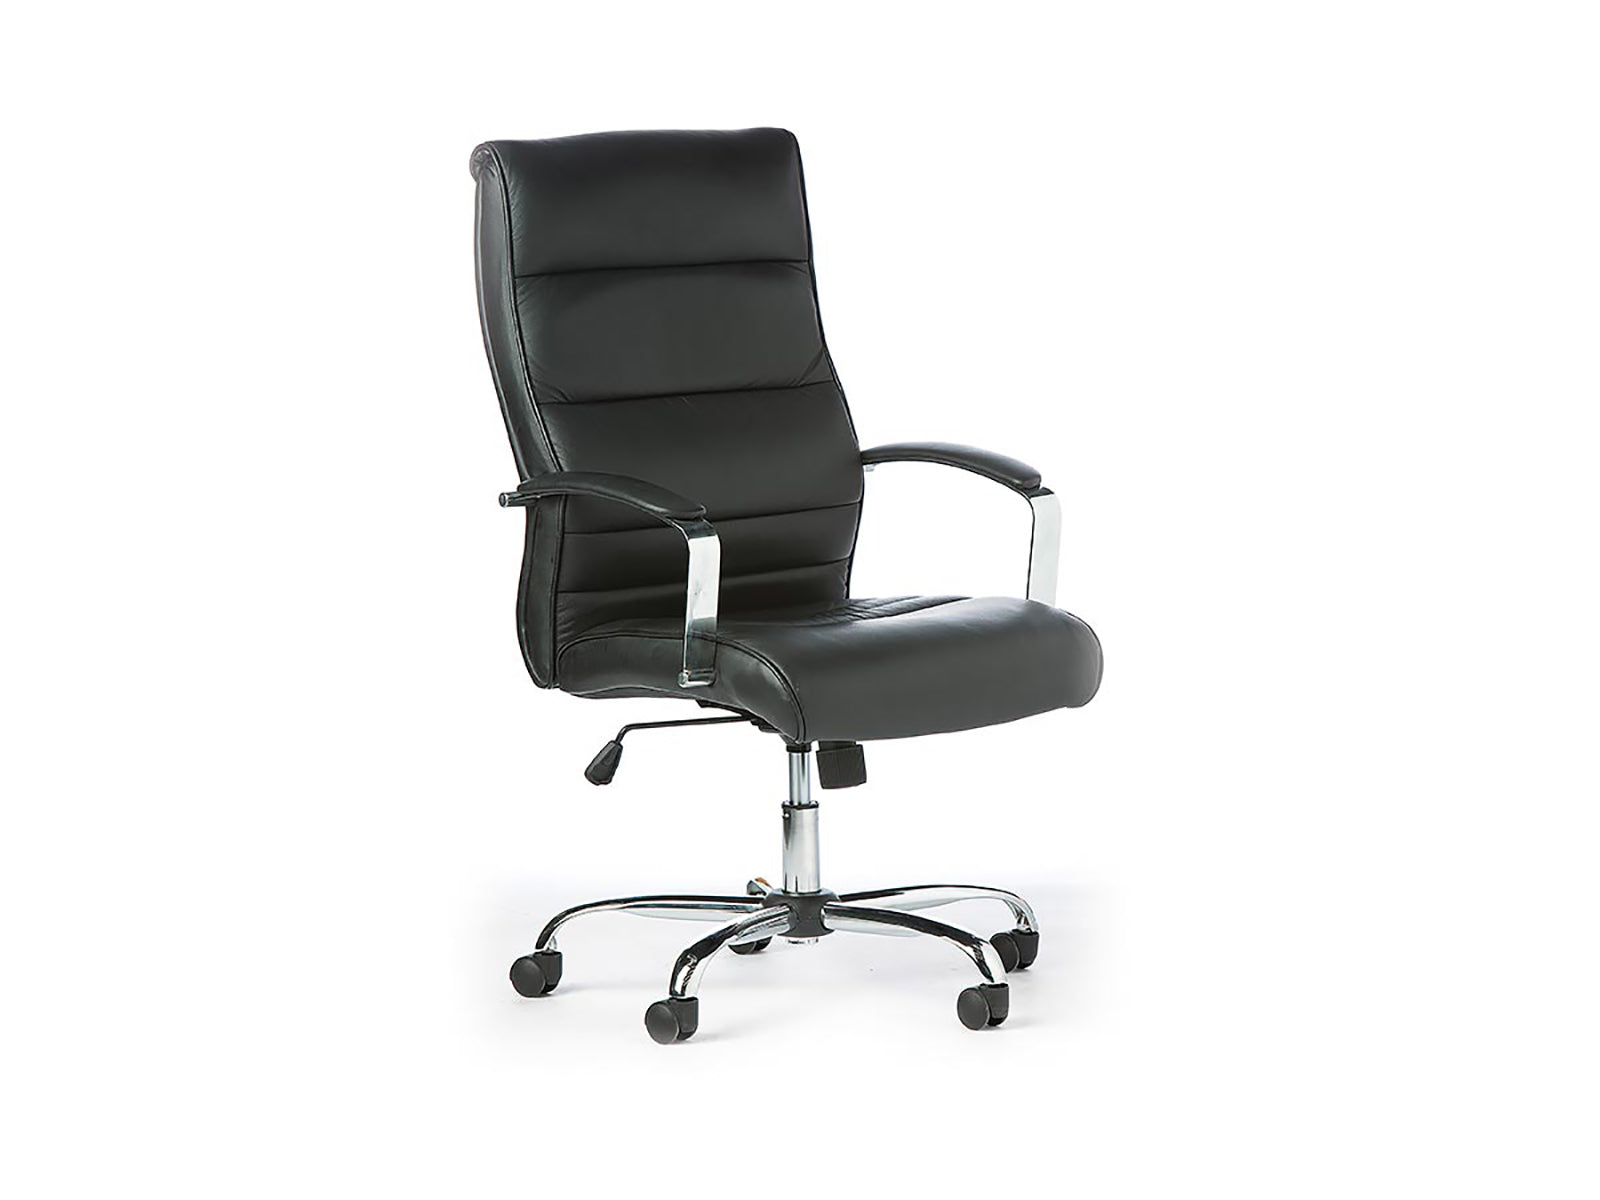 Monza Highback Executive Chair - Workspace Furniture Home and Office Chairs